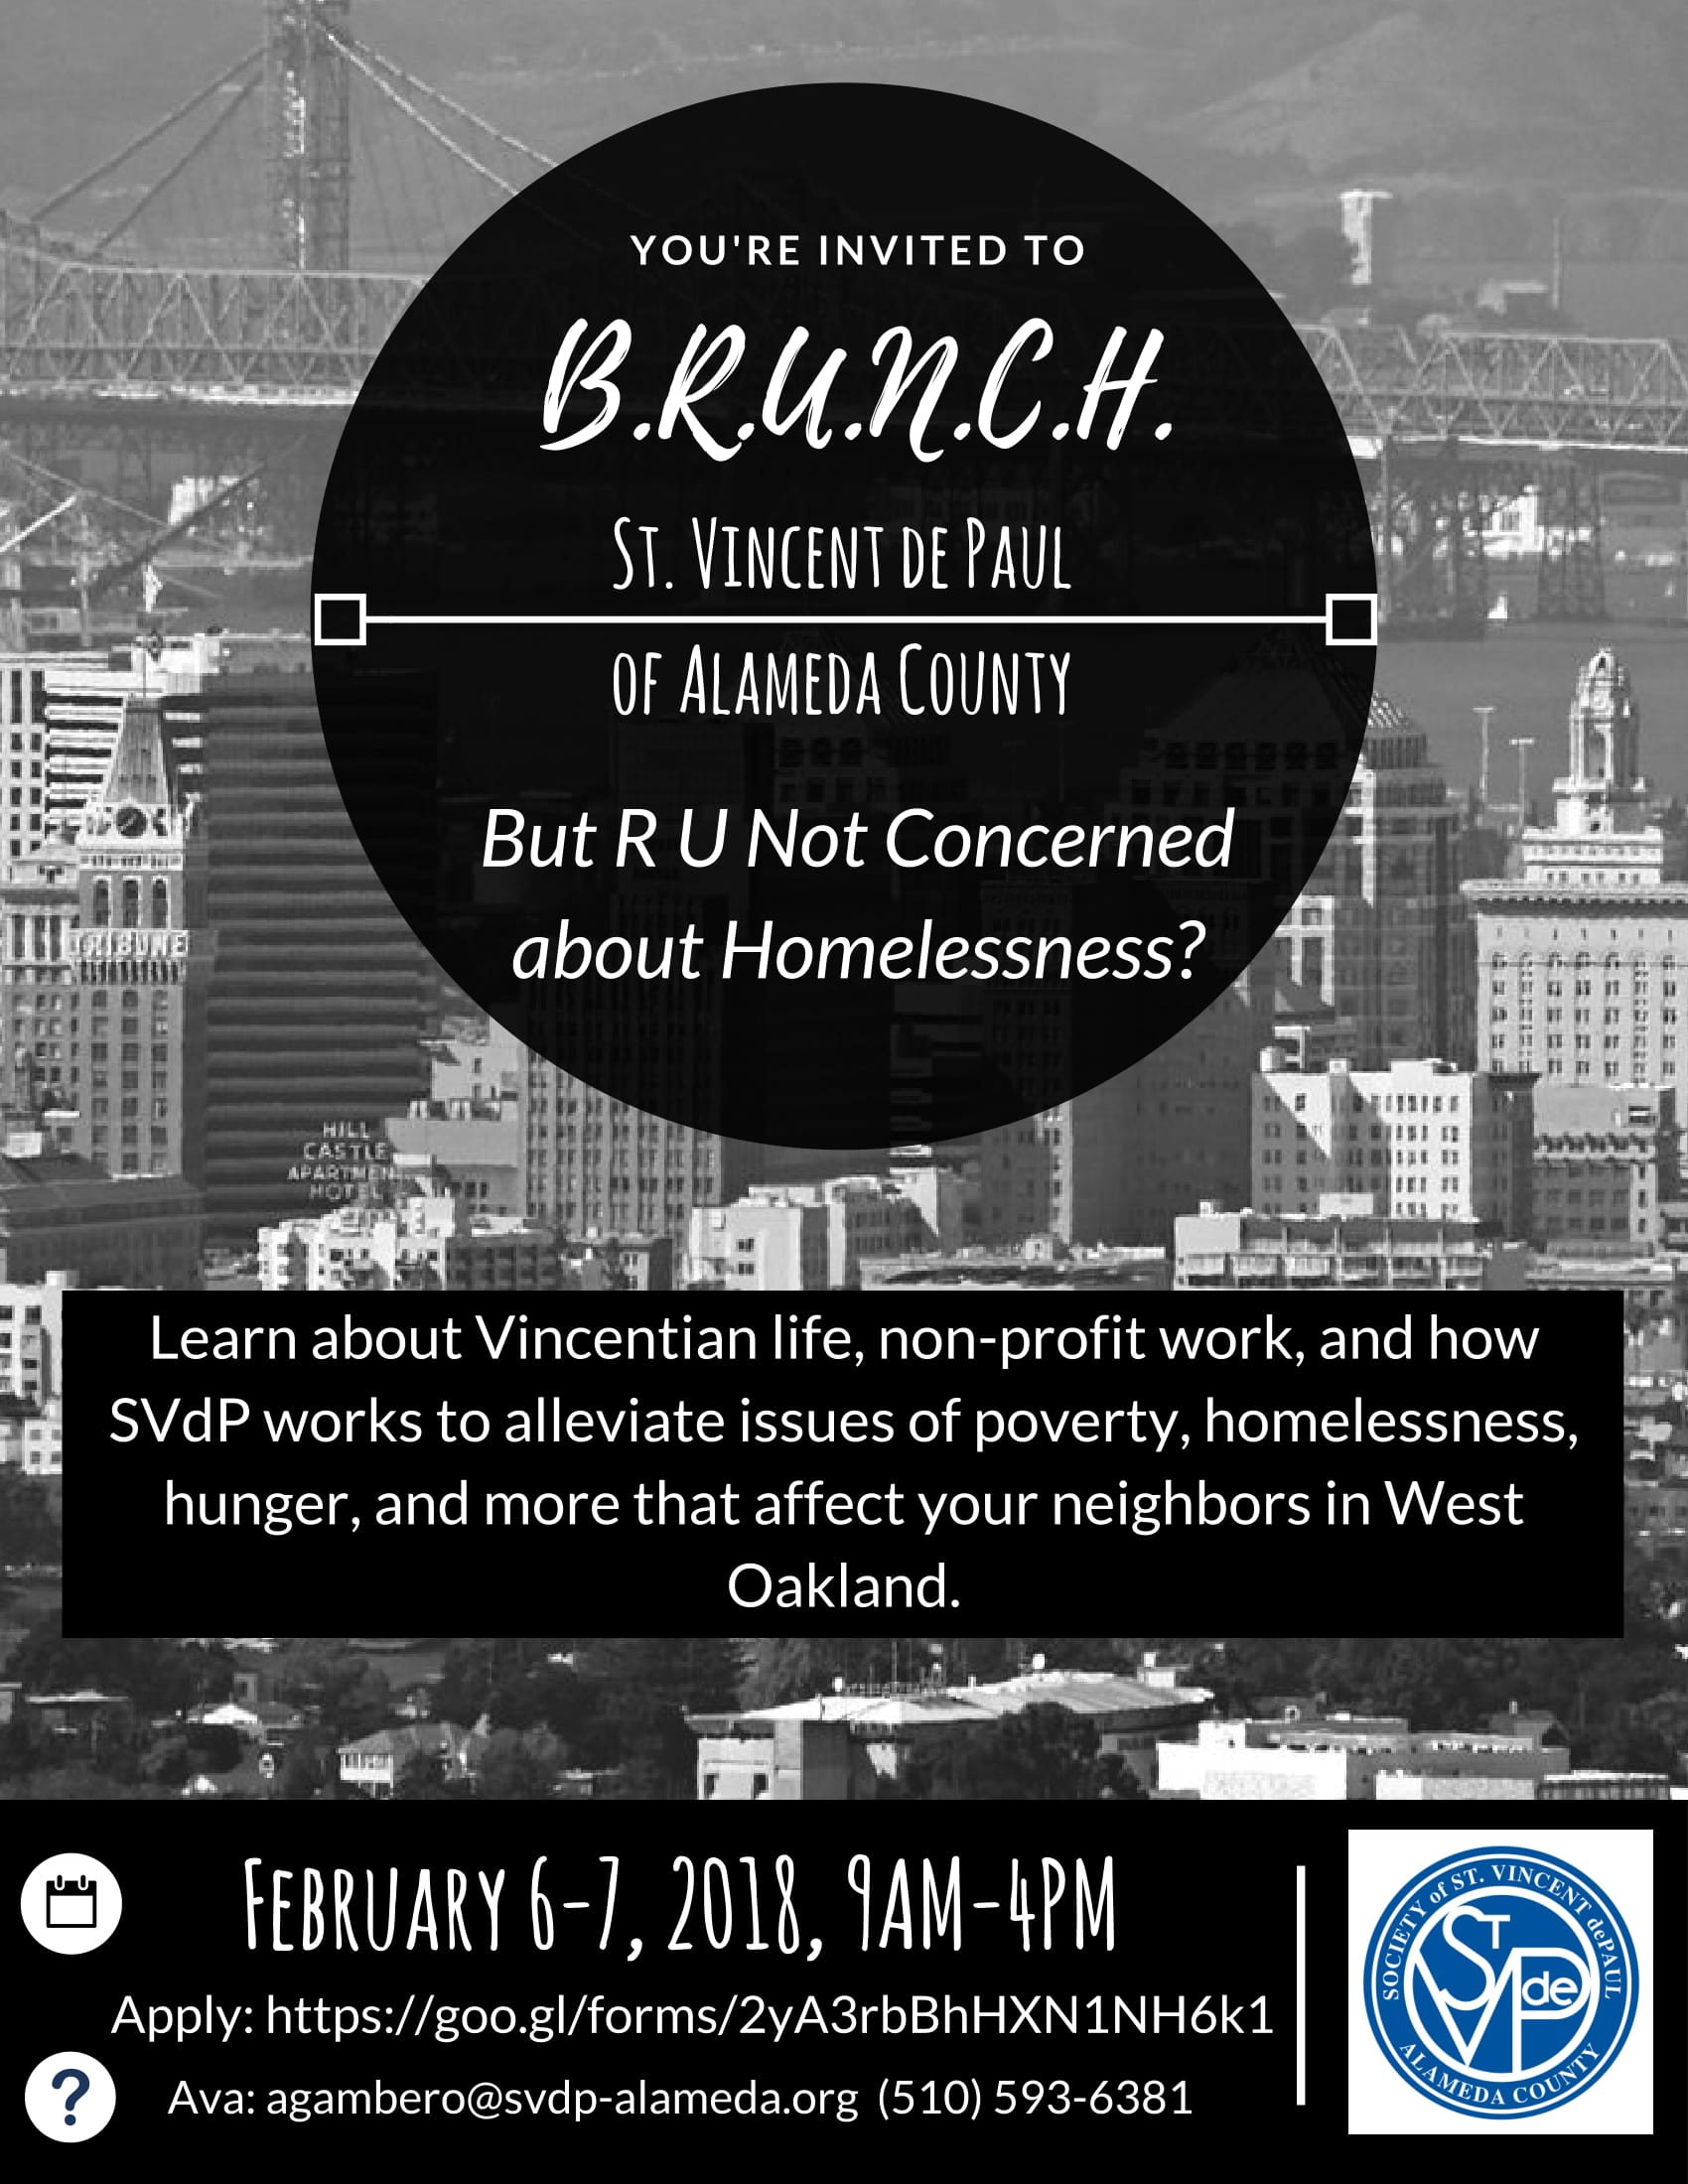 BRUNCH flyer for West Oakland immersion